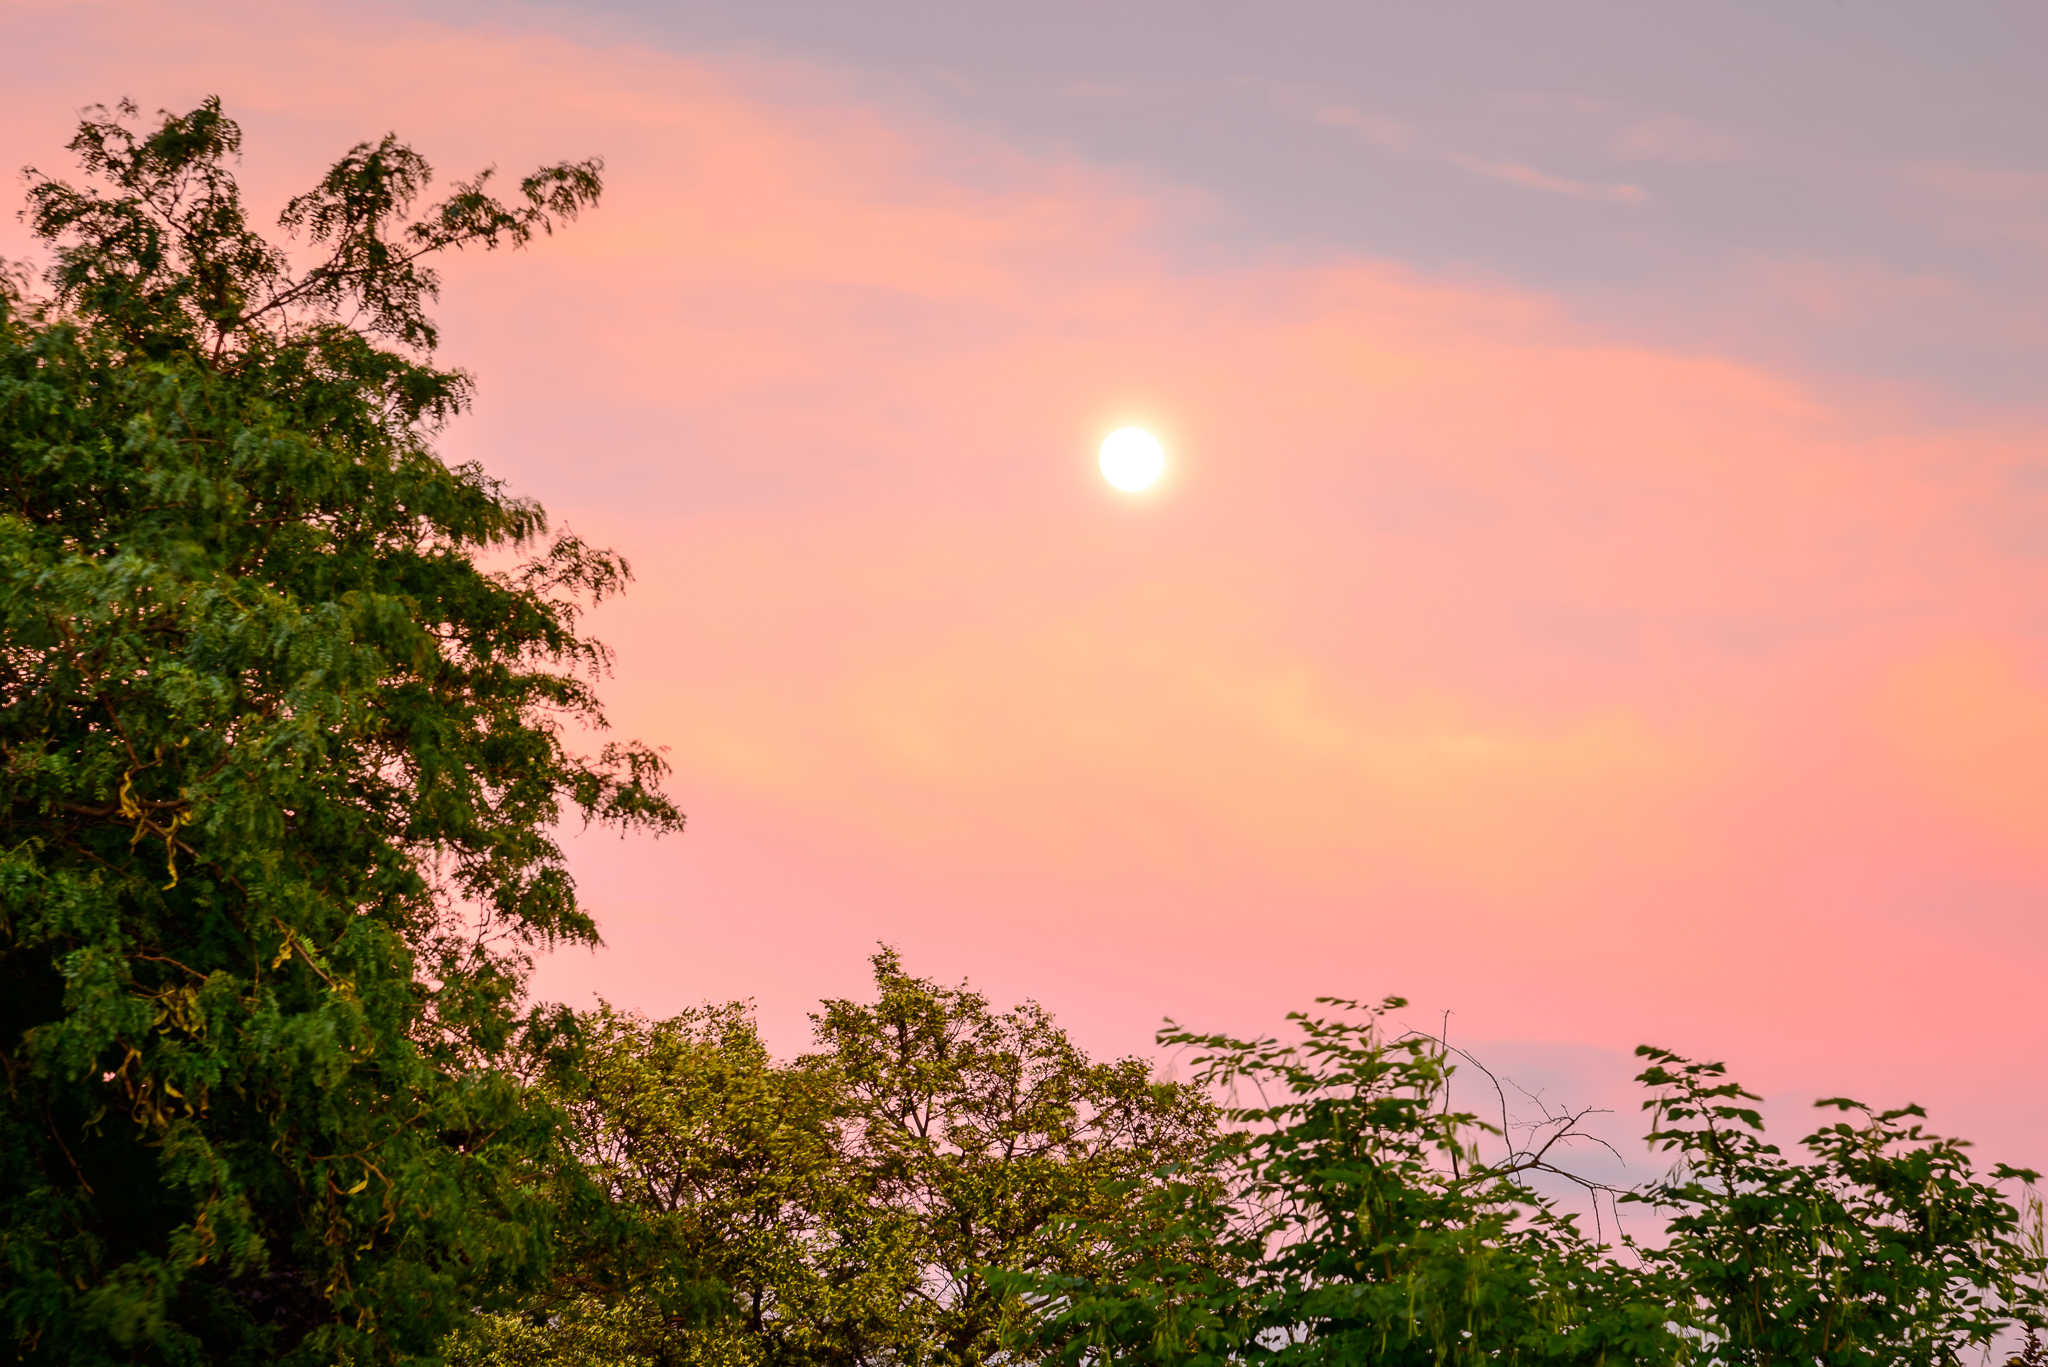 7/29/15. When a good LA buddy is visiting all you have time for is a quick neighborhood sunset/moonrise.